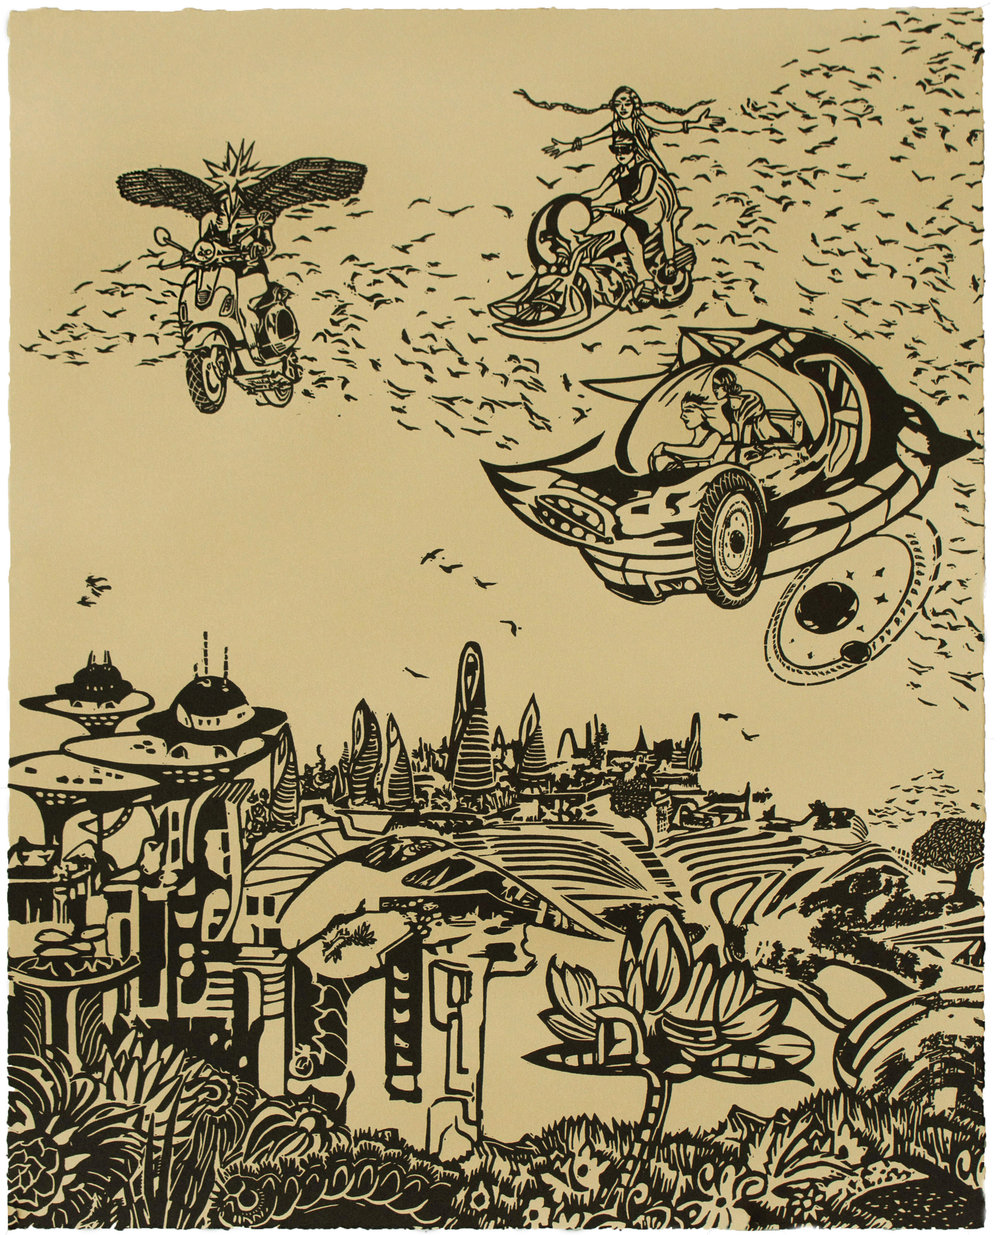 Chitra Ganesh,  Over the City , 2018, Linocut BFK Rives Tan, 280gsm, Edition of 35, 20 1/ 8 x 16 1/8 inches (51.1 x 41 cm)